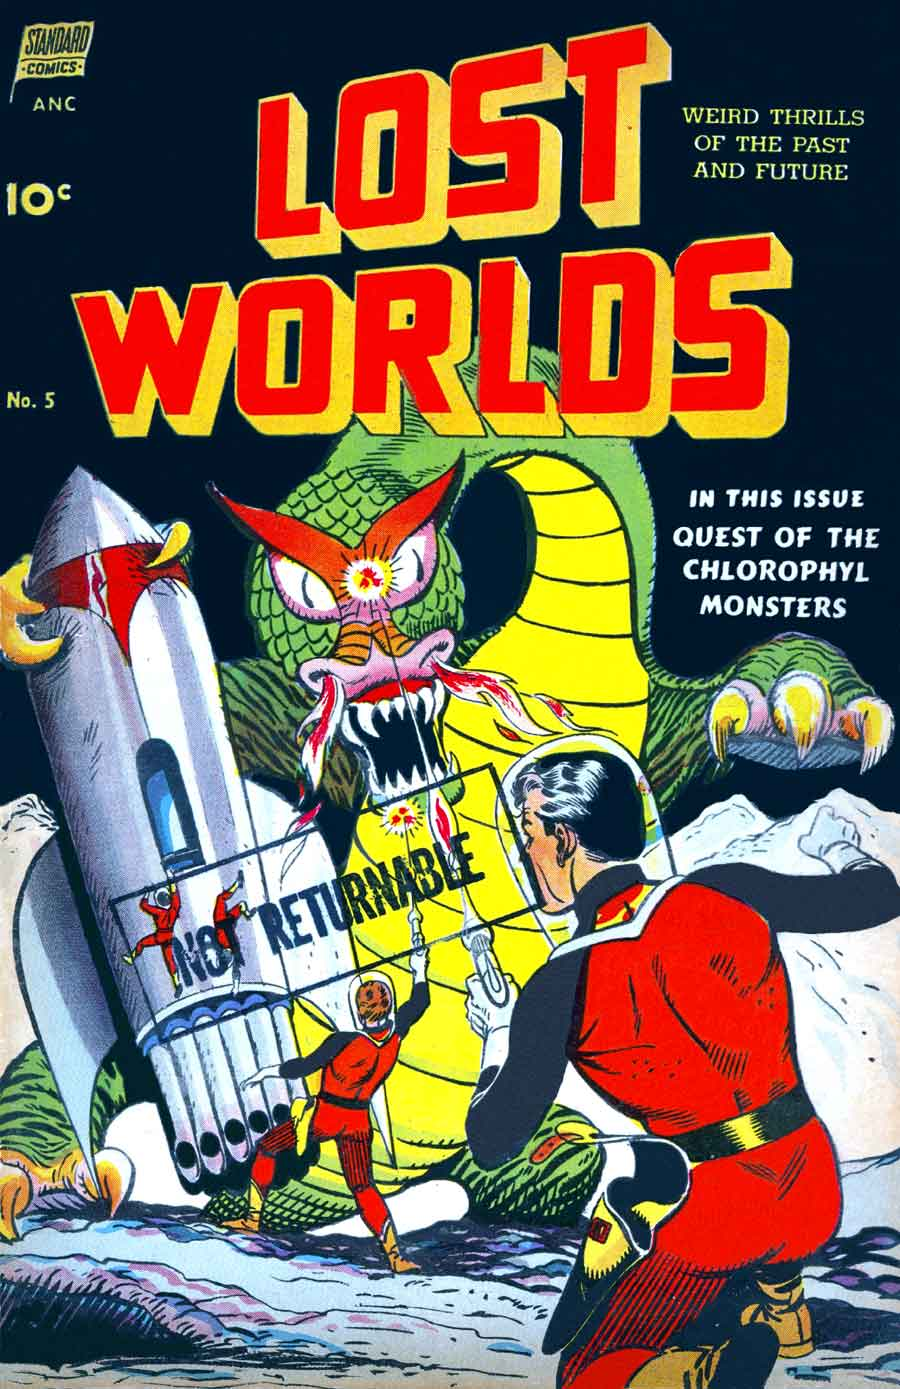 Lost Worlds v1 #5 standard comic book cover art by Alex Toth